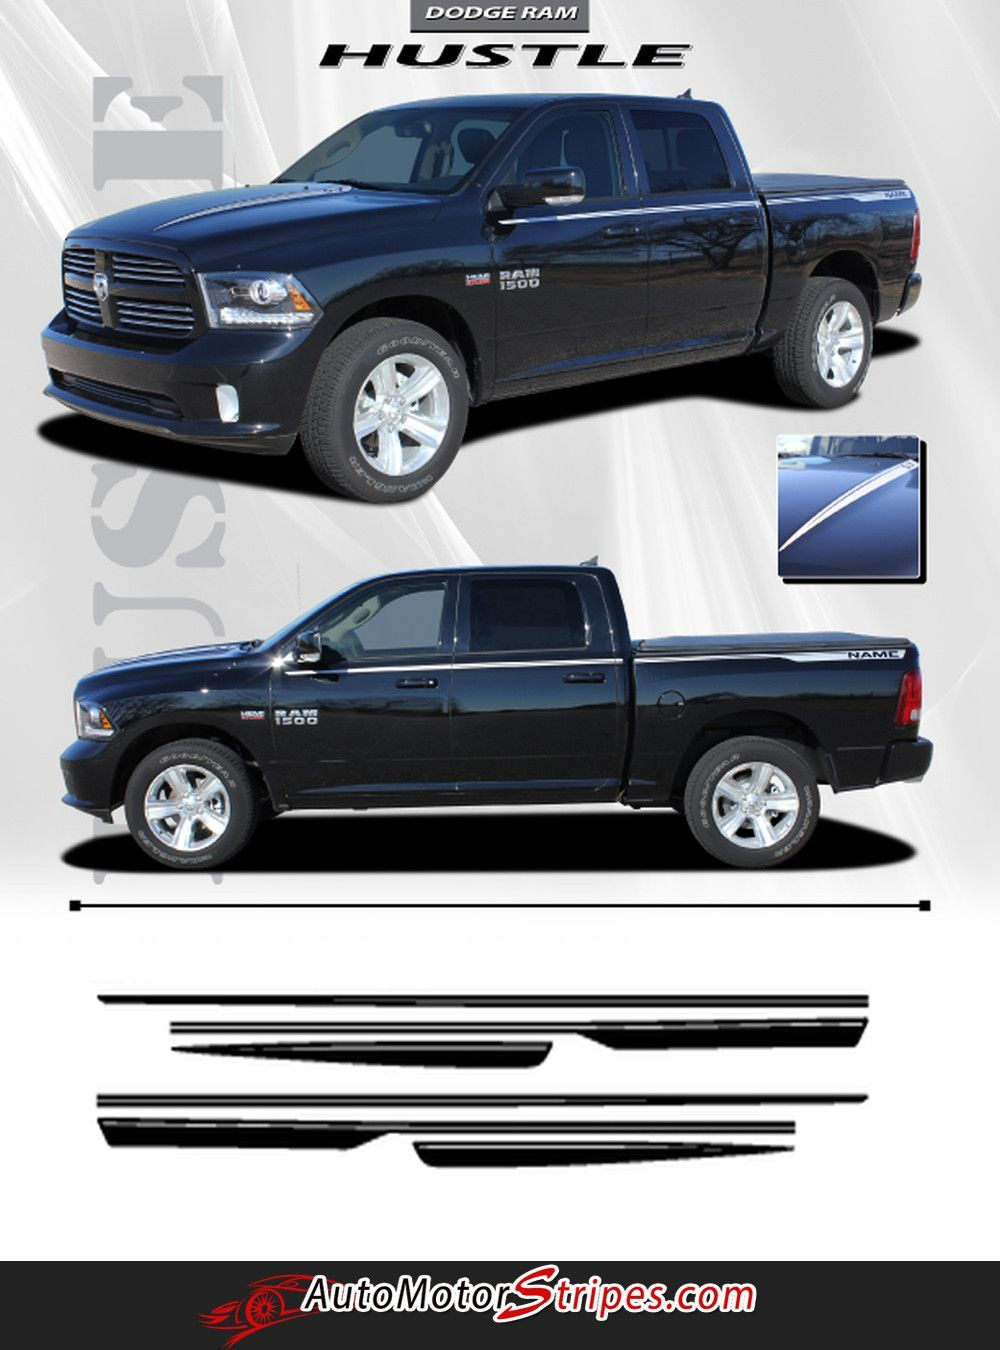 Dodge Ram Power Truck Hood And Rear Side Strobes Truck - Custom vinyl decals for car hoodsfull color graphic vinyl sticker decal skull ghost fit car hood